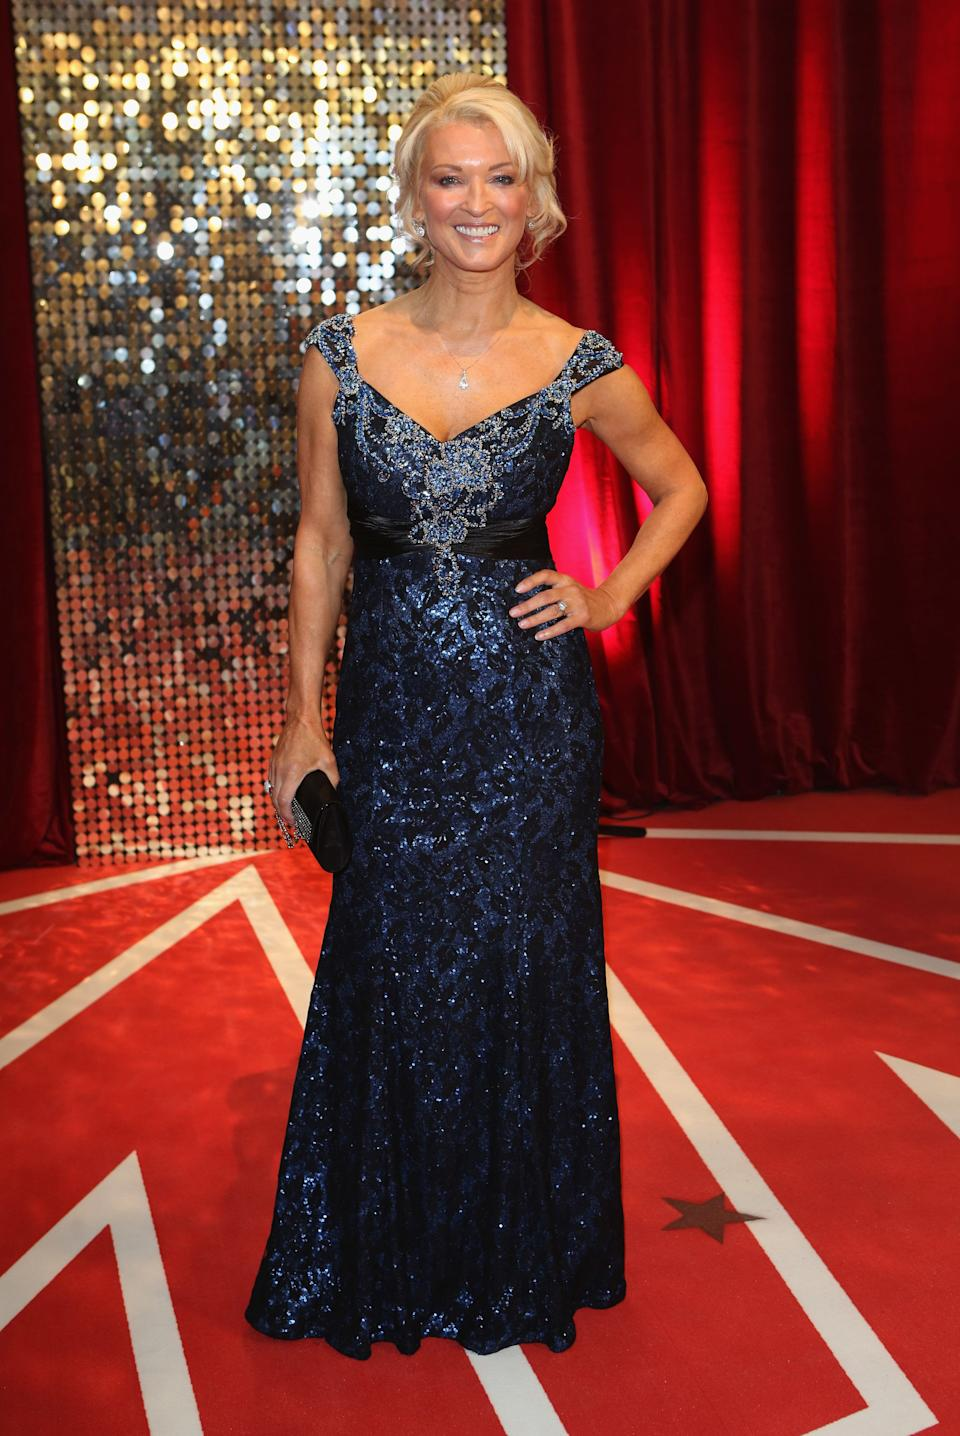 Gillian Taylforth spent 15 years as Kathy Beale in 'EastEnders', though 'Hollyoaks' fans will recognise her as Sandy Roscoe.